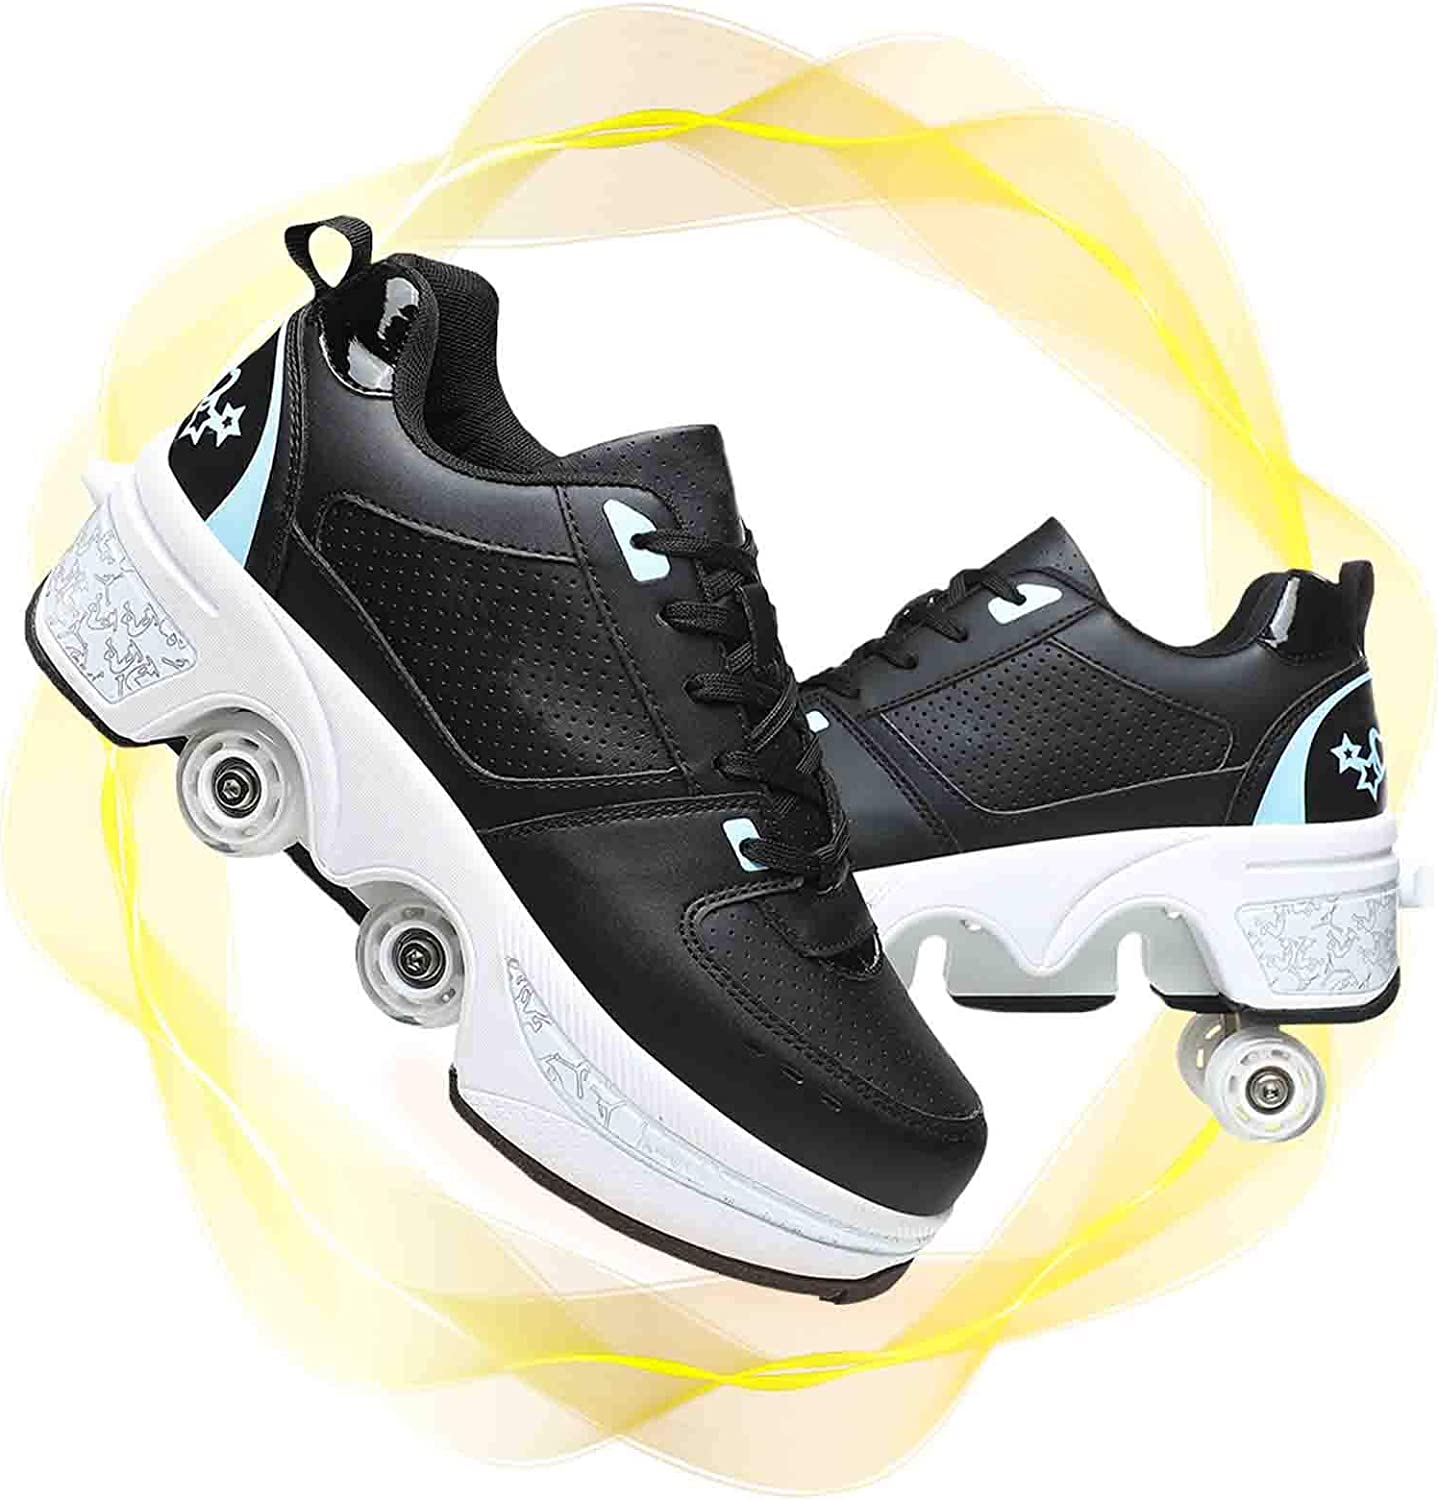 Max 68% OFF Opening large release sale Men and Women Deformation Roller Shoes 2-in Multi-Purpose Skates